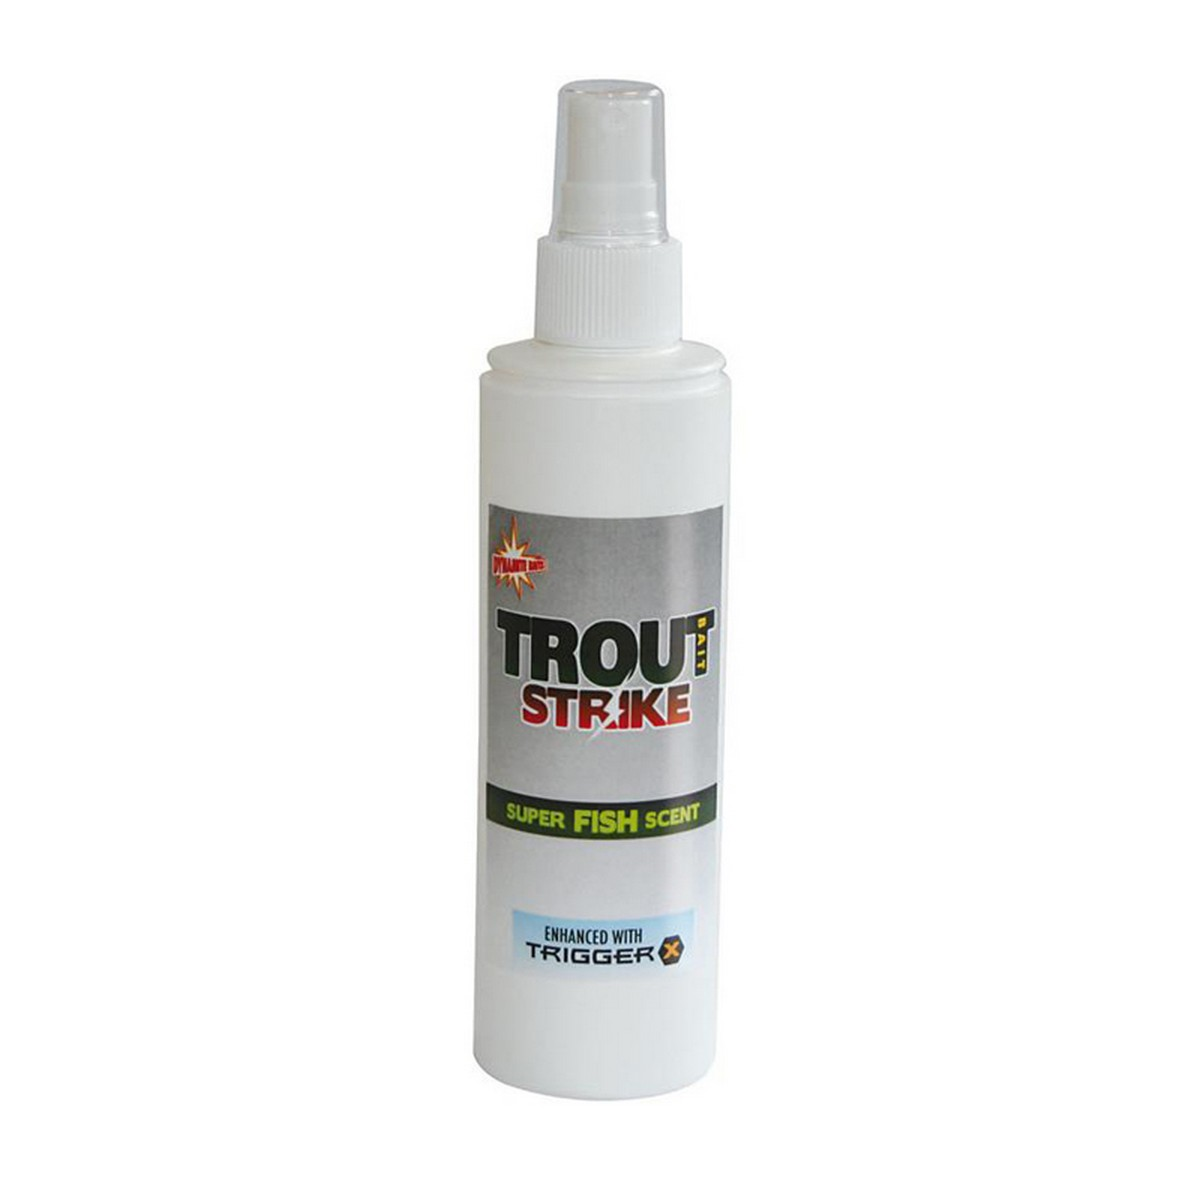 Течен атрактант DB Trout Bait - Liquid Super Fish Scent